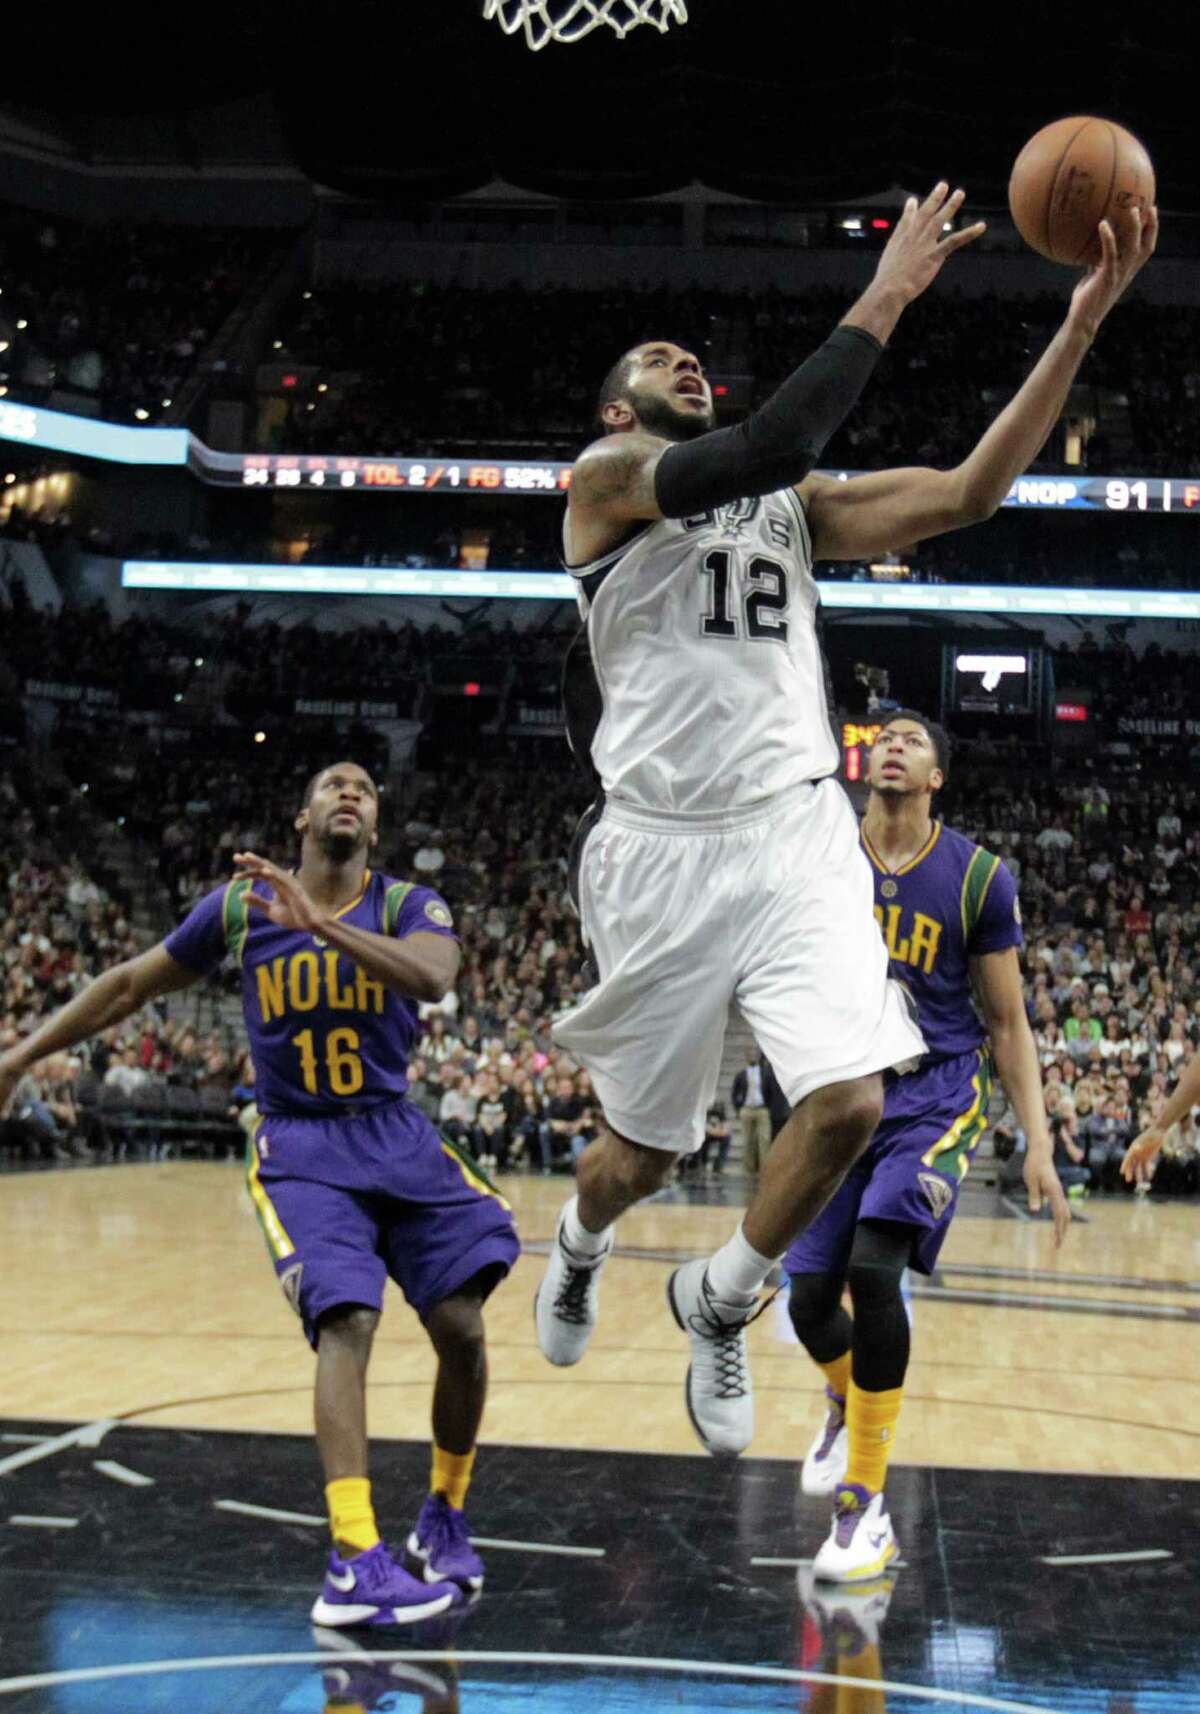 San Antonio Spurs' LaMarcus Aldridge gets through New Orleans Pelicans' Toney Douglas, left, and Anthony Davis during the second half at the AT&T Center, Wednesday, Feb. 3, 2016.